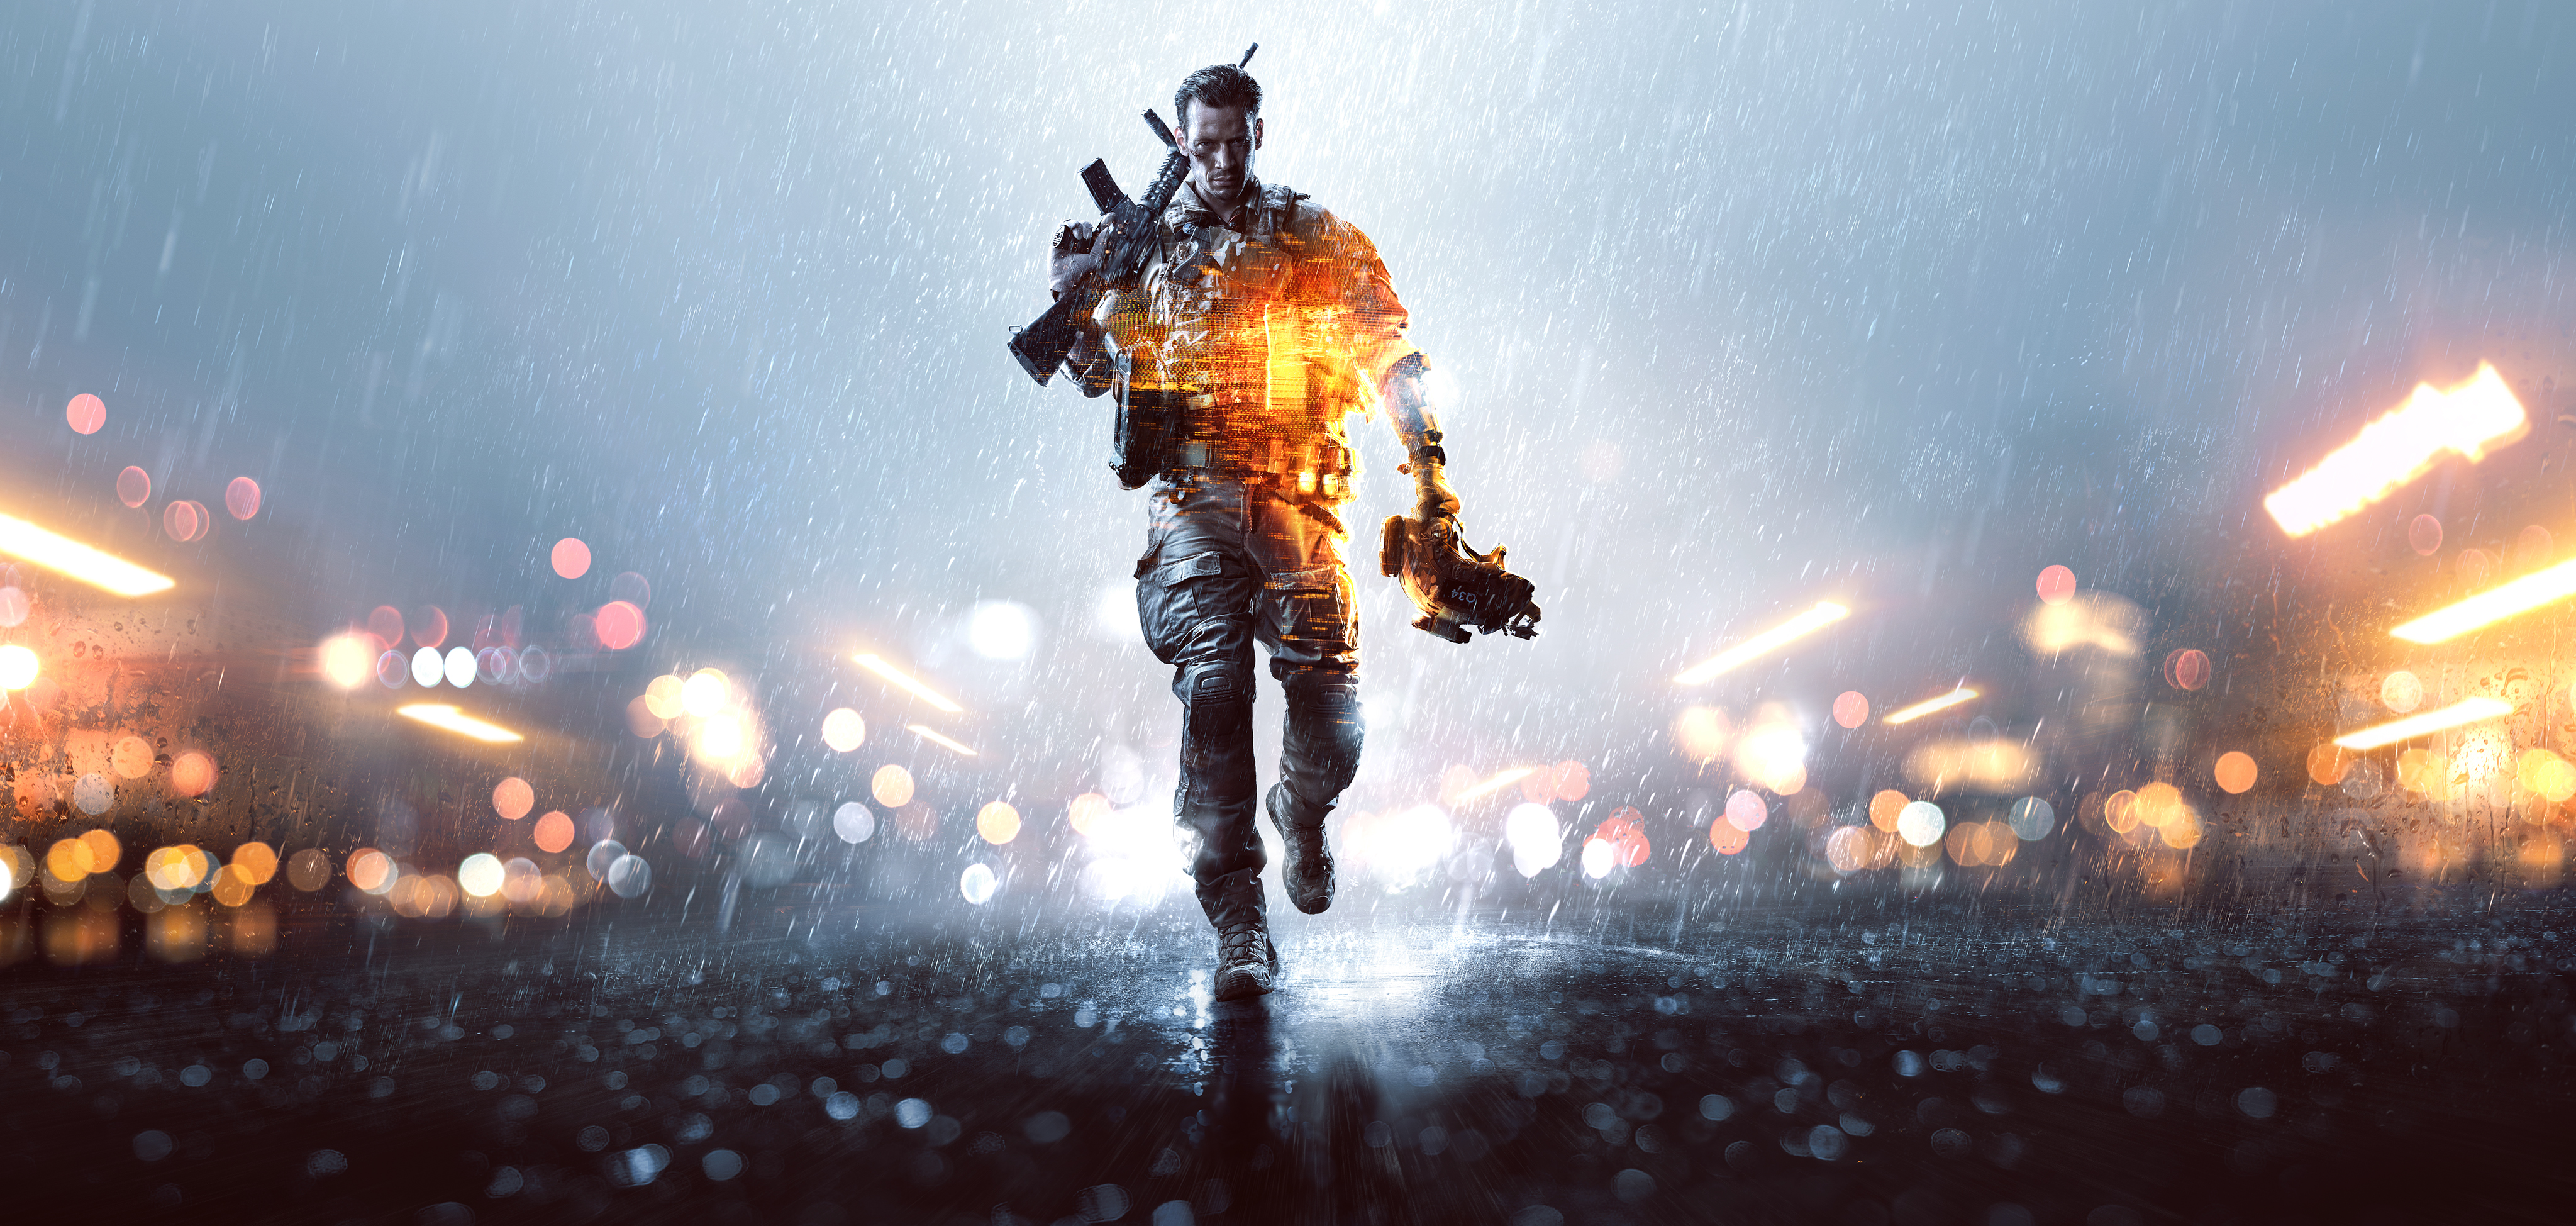 Bf4 wallpaper 1080p wallpapersafari - Bf4 wallpaper ...